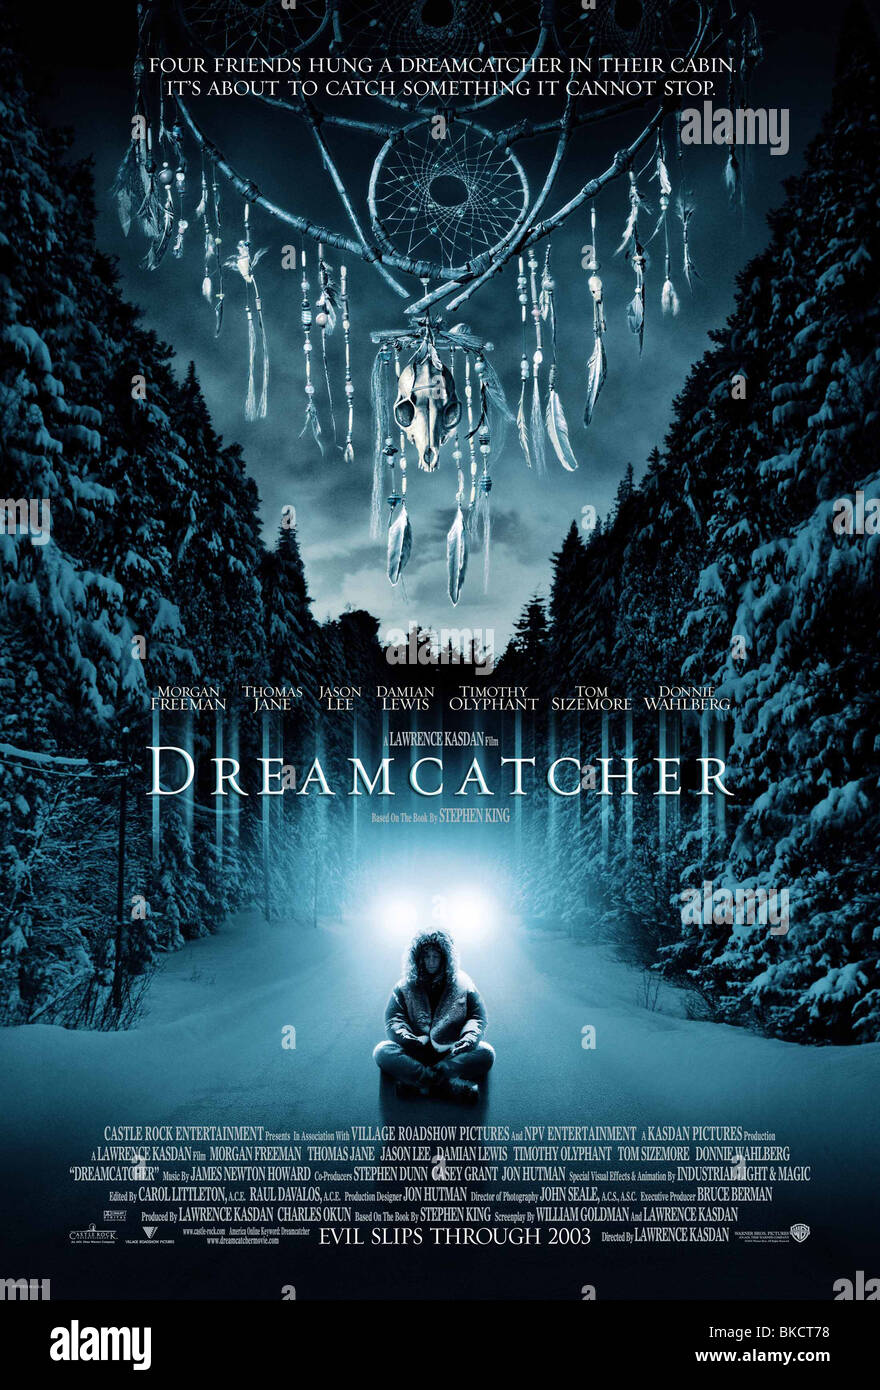 DREAMCATCHER -2003 POSTER - Stock Image